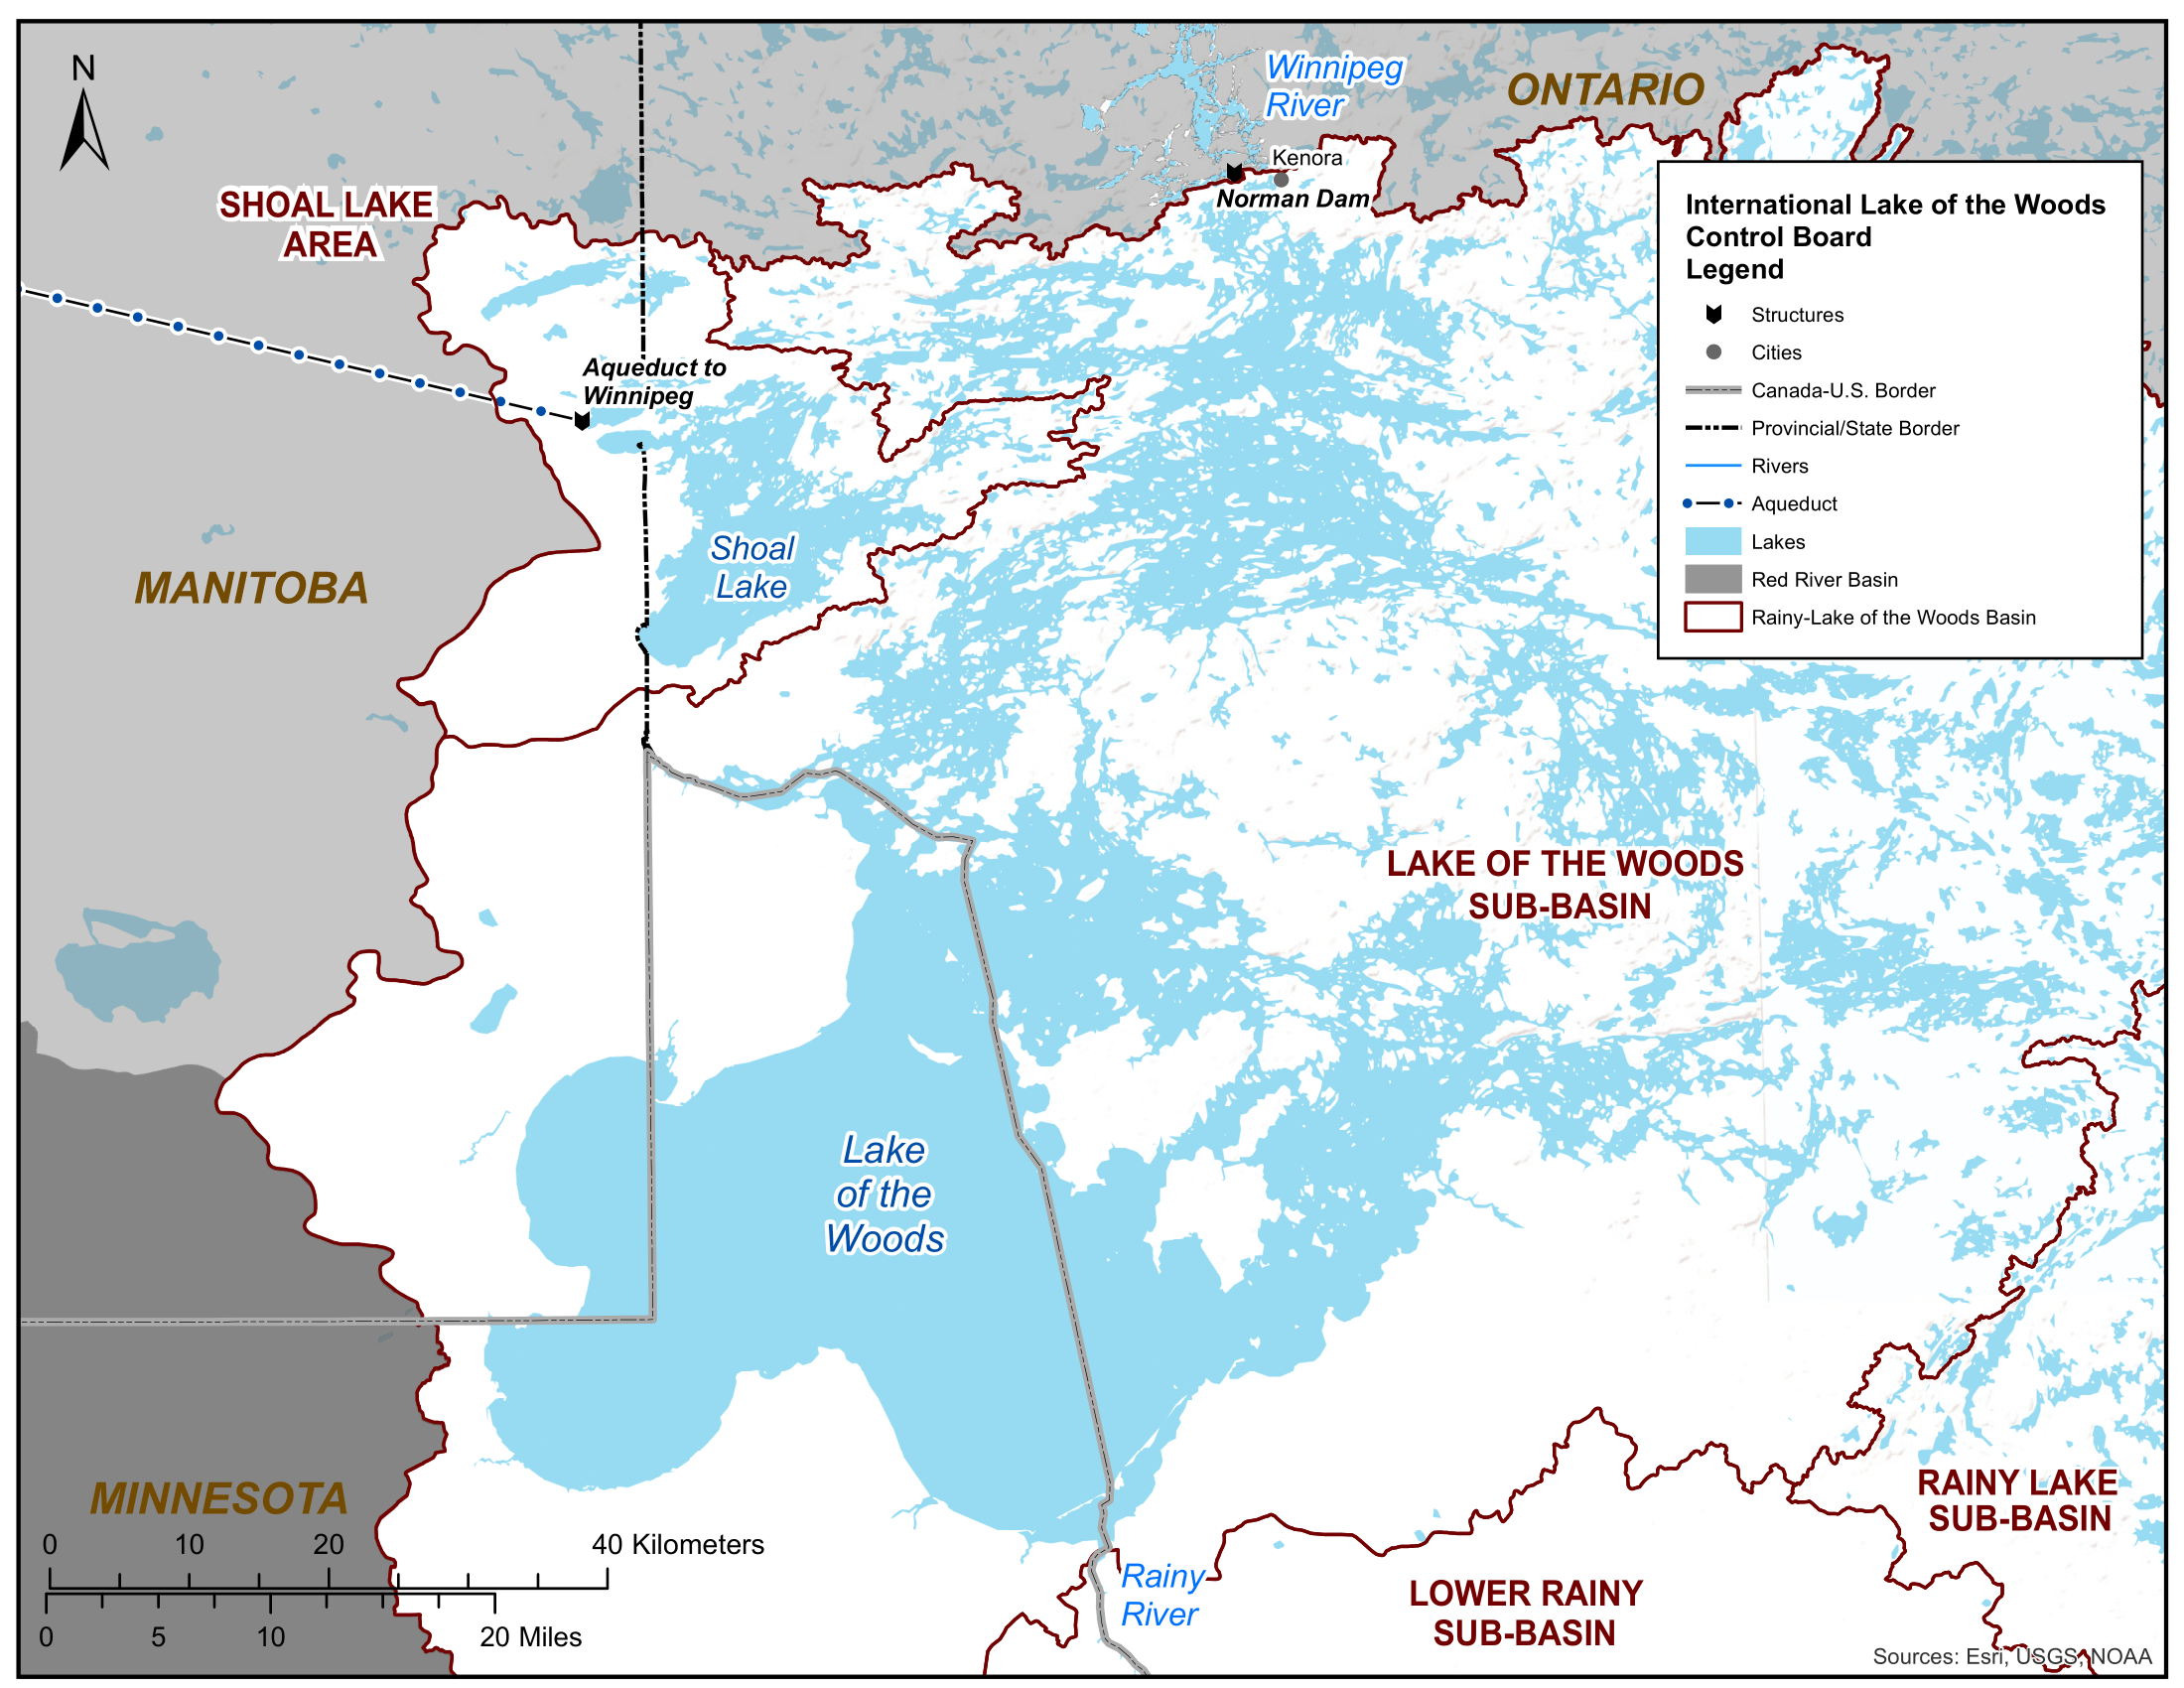 Lake of the Woods sub-basin and Norman Dam map